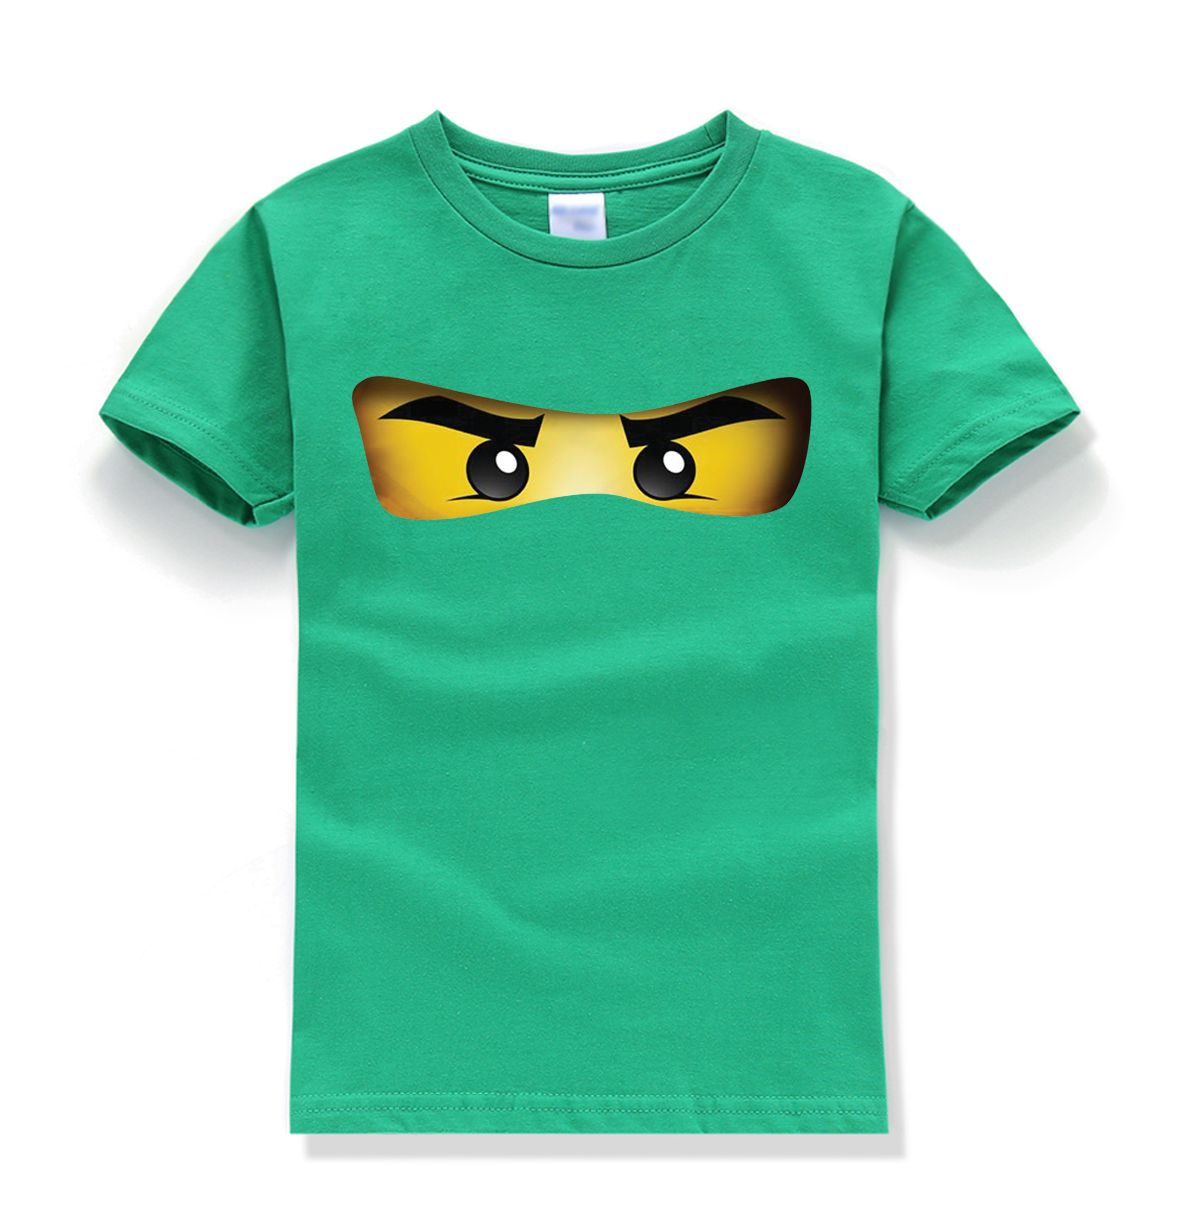 hot sale baby boys clothes 2018 summer funny cartoon pattern t-shirts 100% cotton good quality t-shirts O-neck short sleeve tees hot sale kids t shirts cartoon streetwear short sleeve casual o neck boys and girl t shirts tops funny children t shirt homme